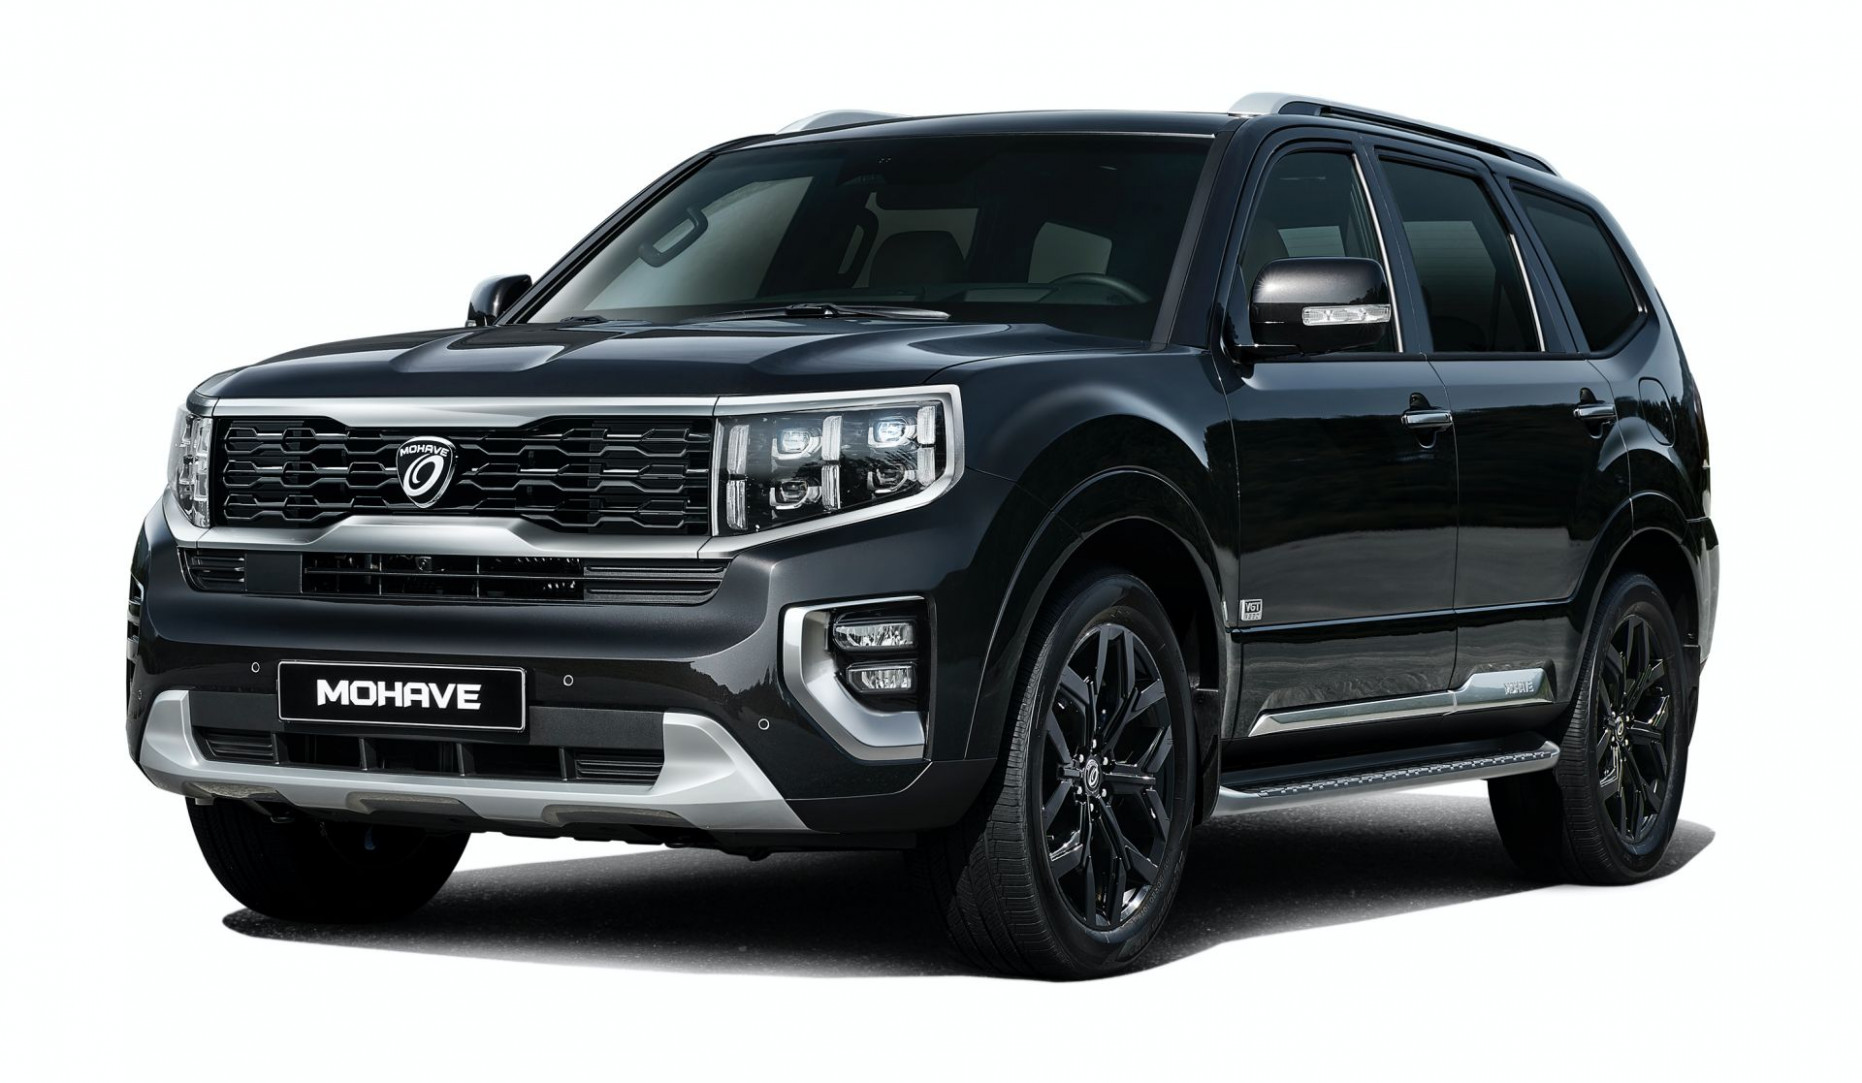 6 Kia Mohave 'Gravity' Is The New KDM Range-Topper With New ...